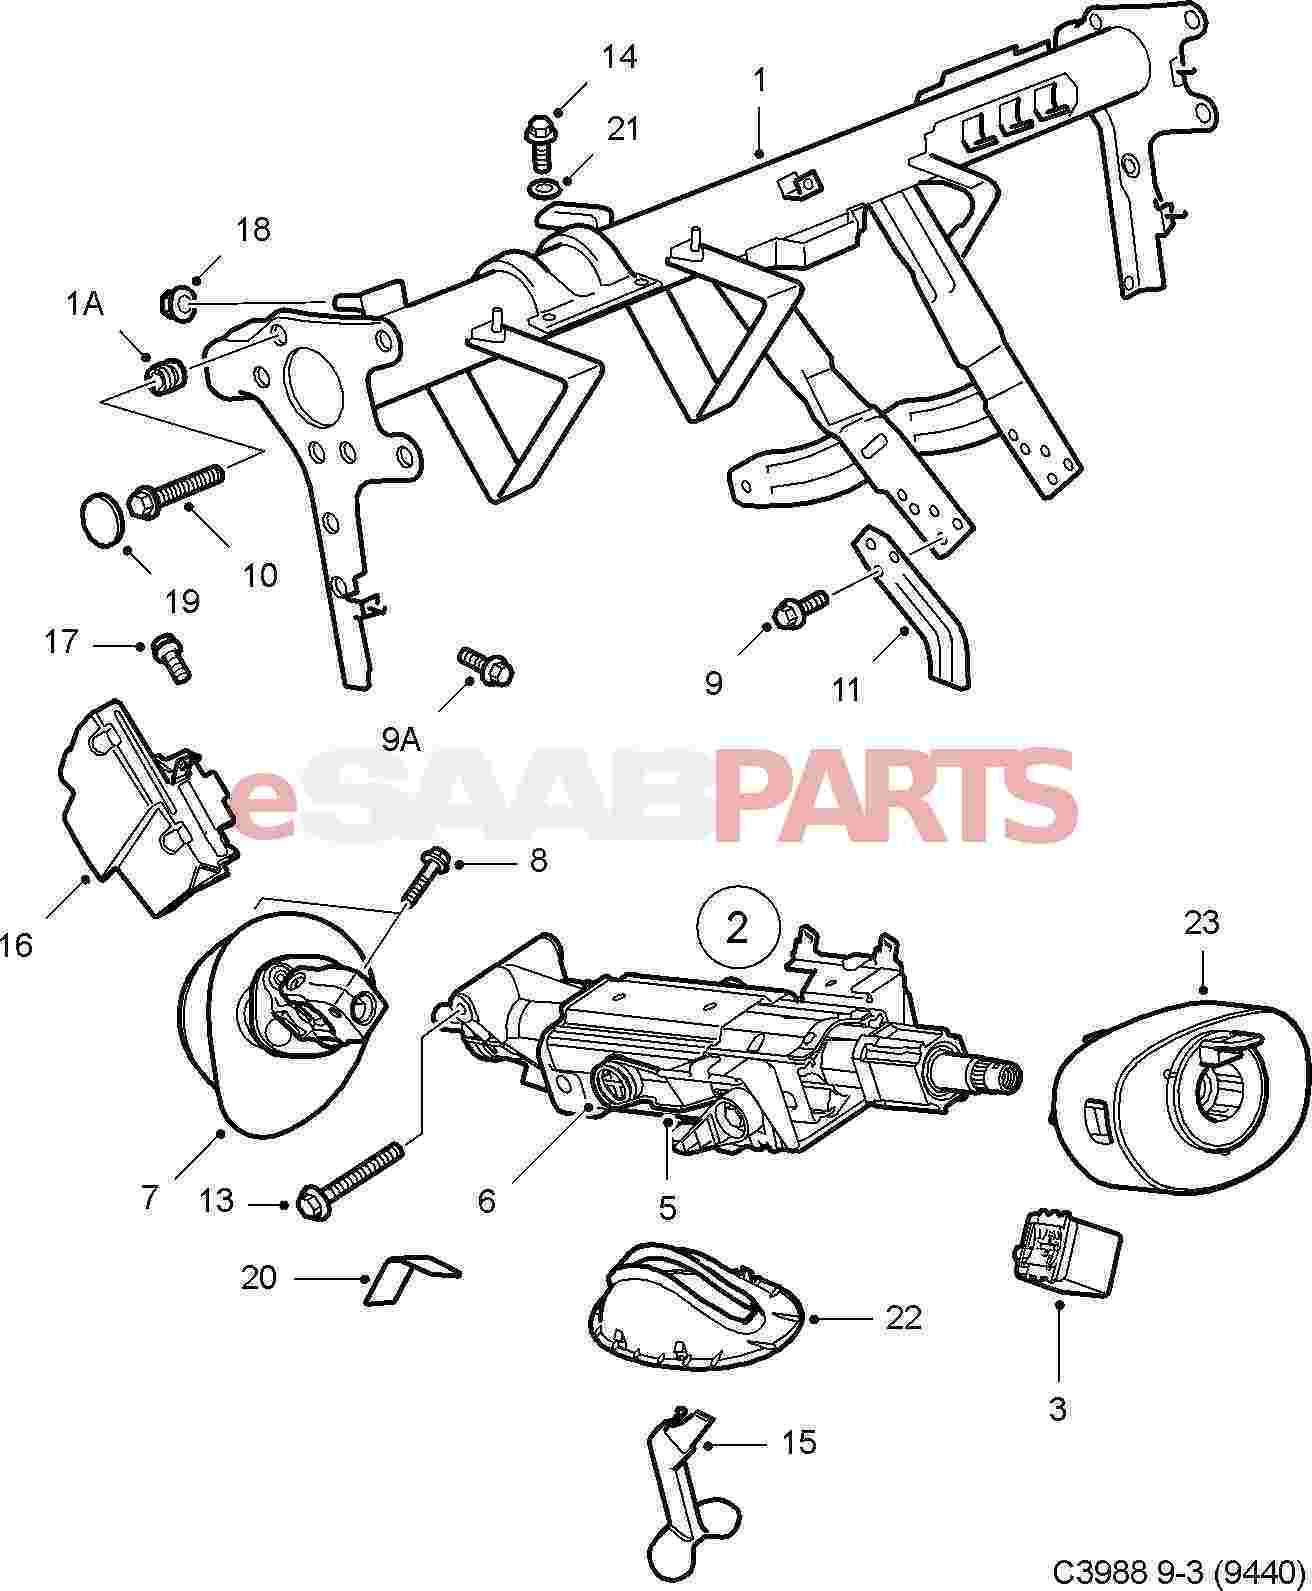 Saab 9 3 9440 Steering Parts Column 2006 Wiring Schematic